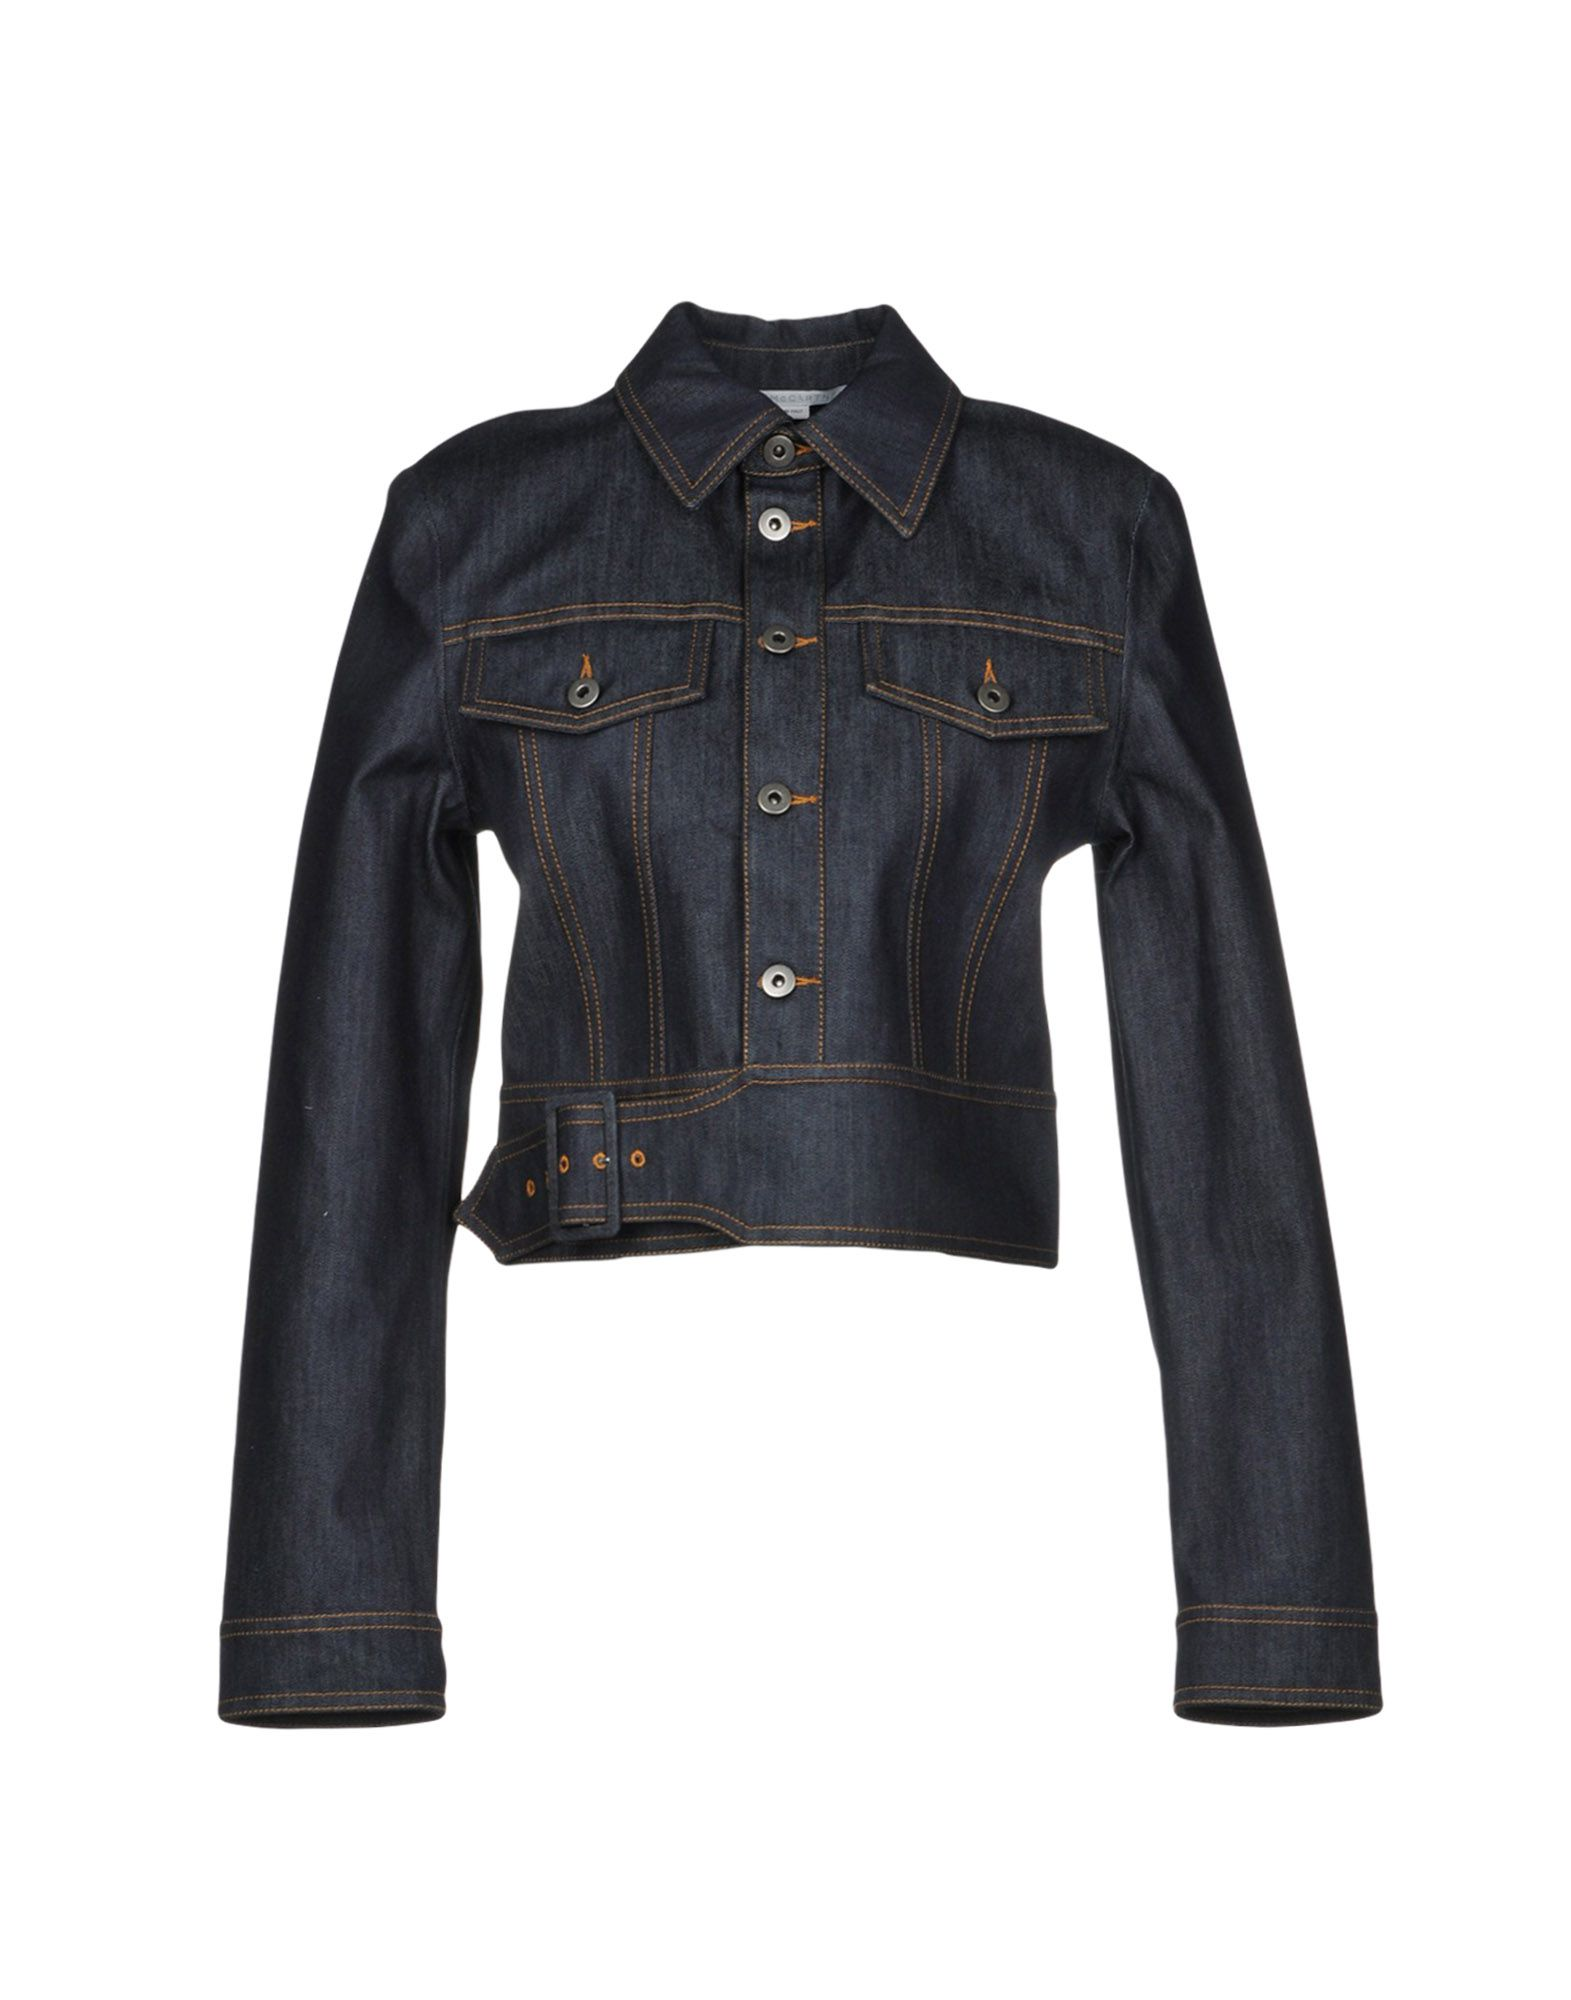 STELLA McCARTNEY Jeansjacke/-mantel Damen Blau von STELLA McCARTNEY